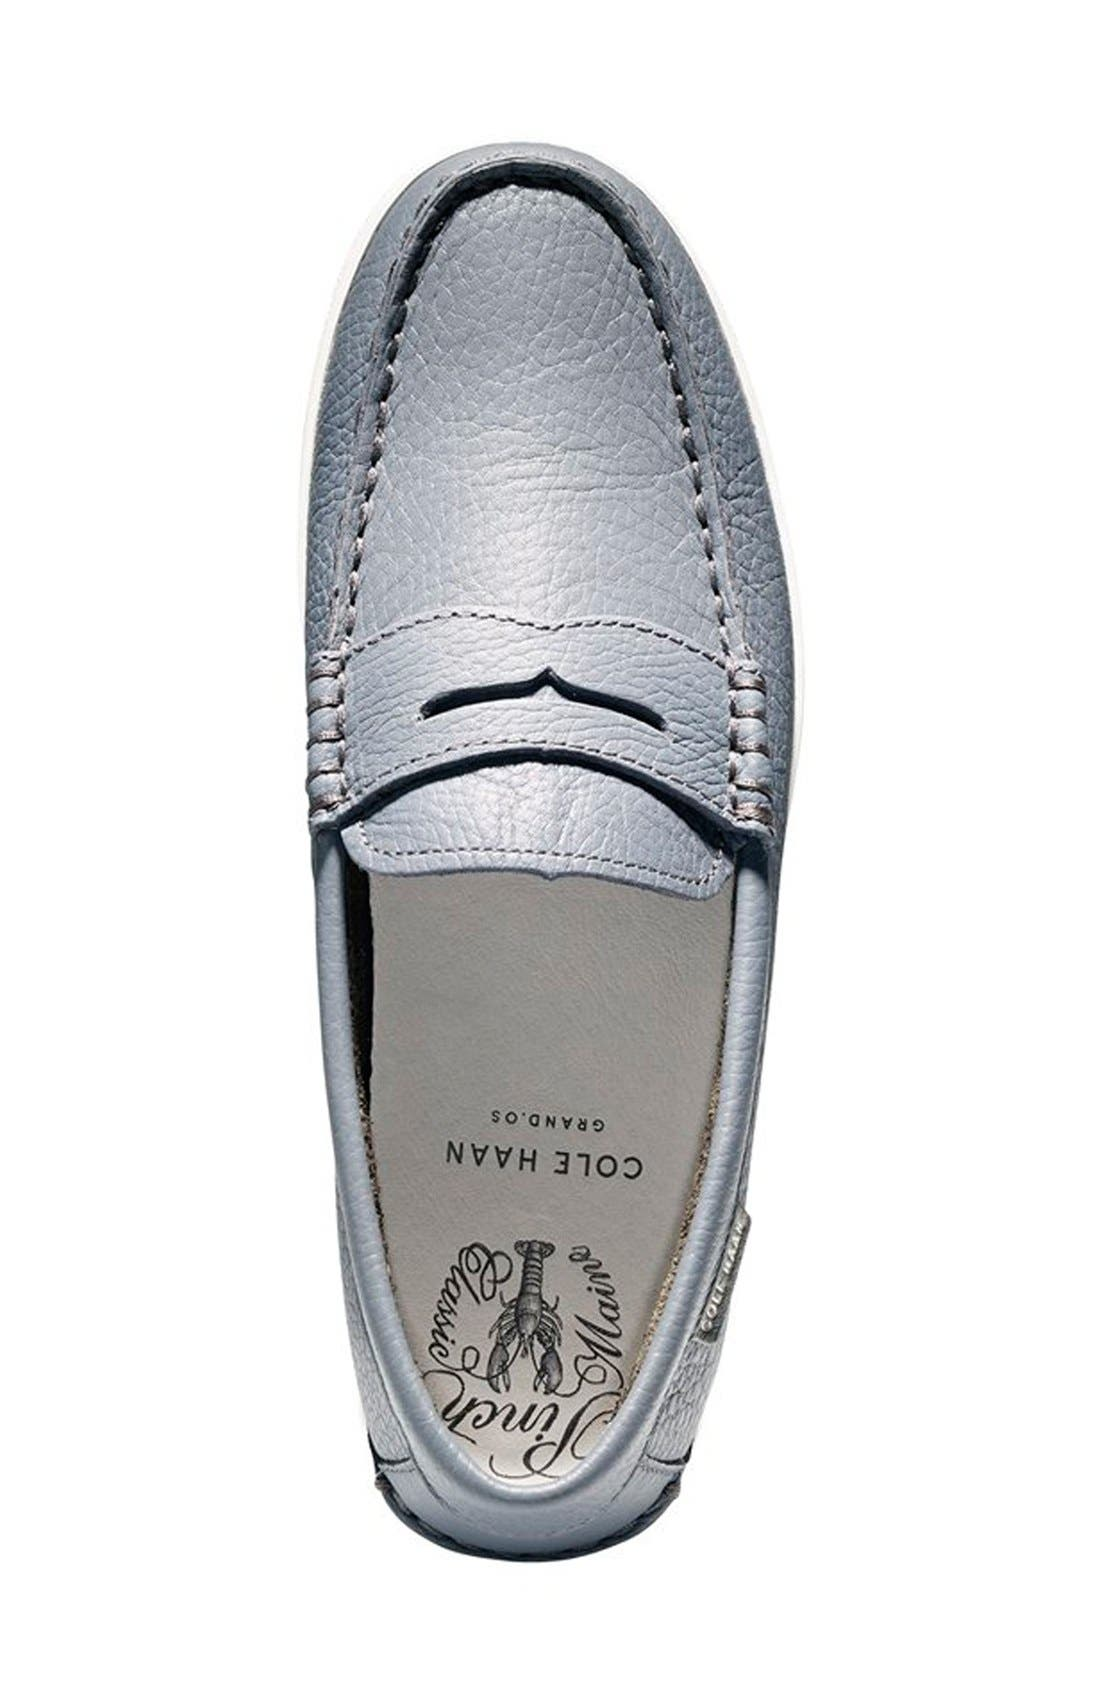 'Pinch' Penny Loafer,                             Alternate thumbnail 3, color,                             Grey Leather/ White